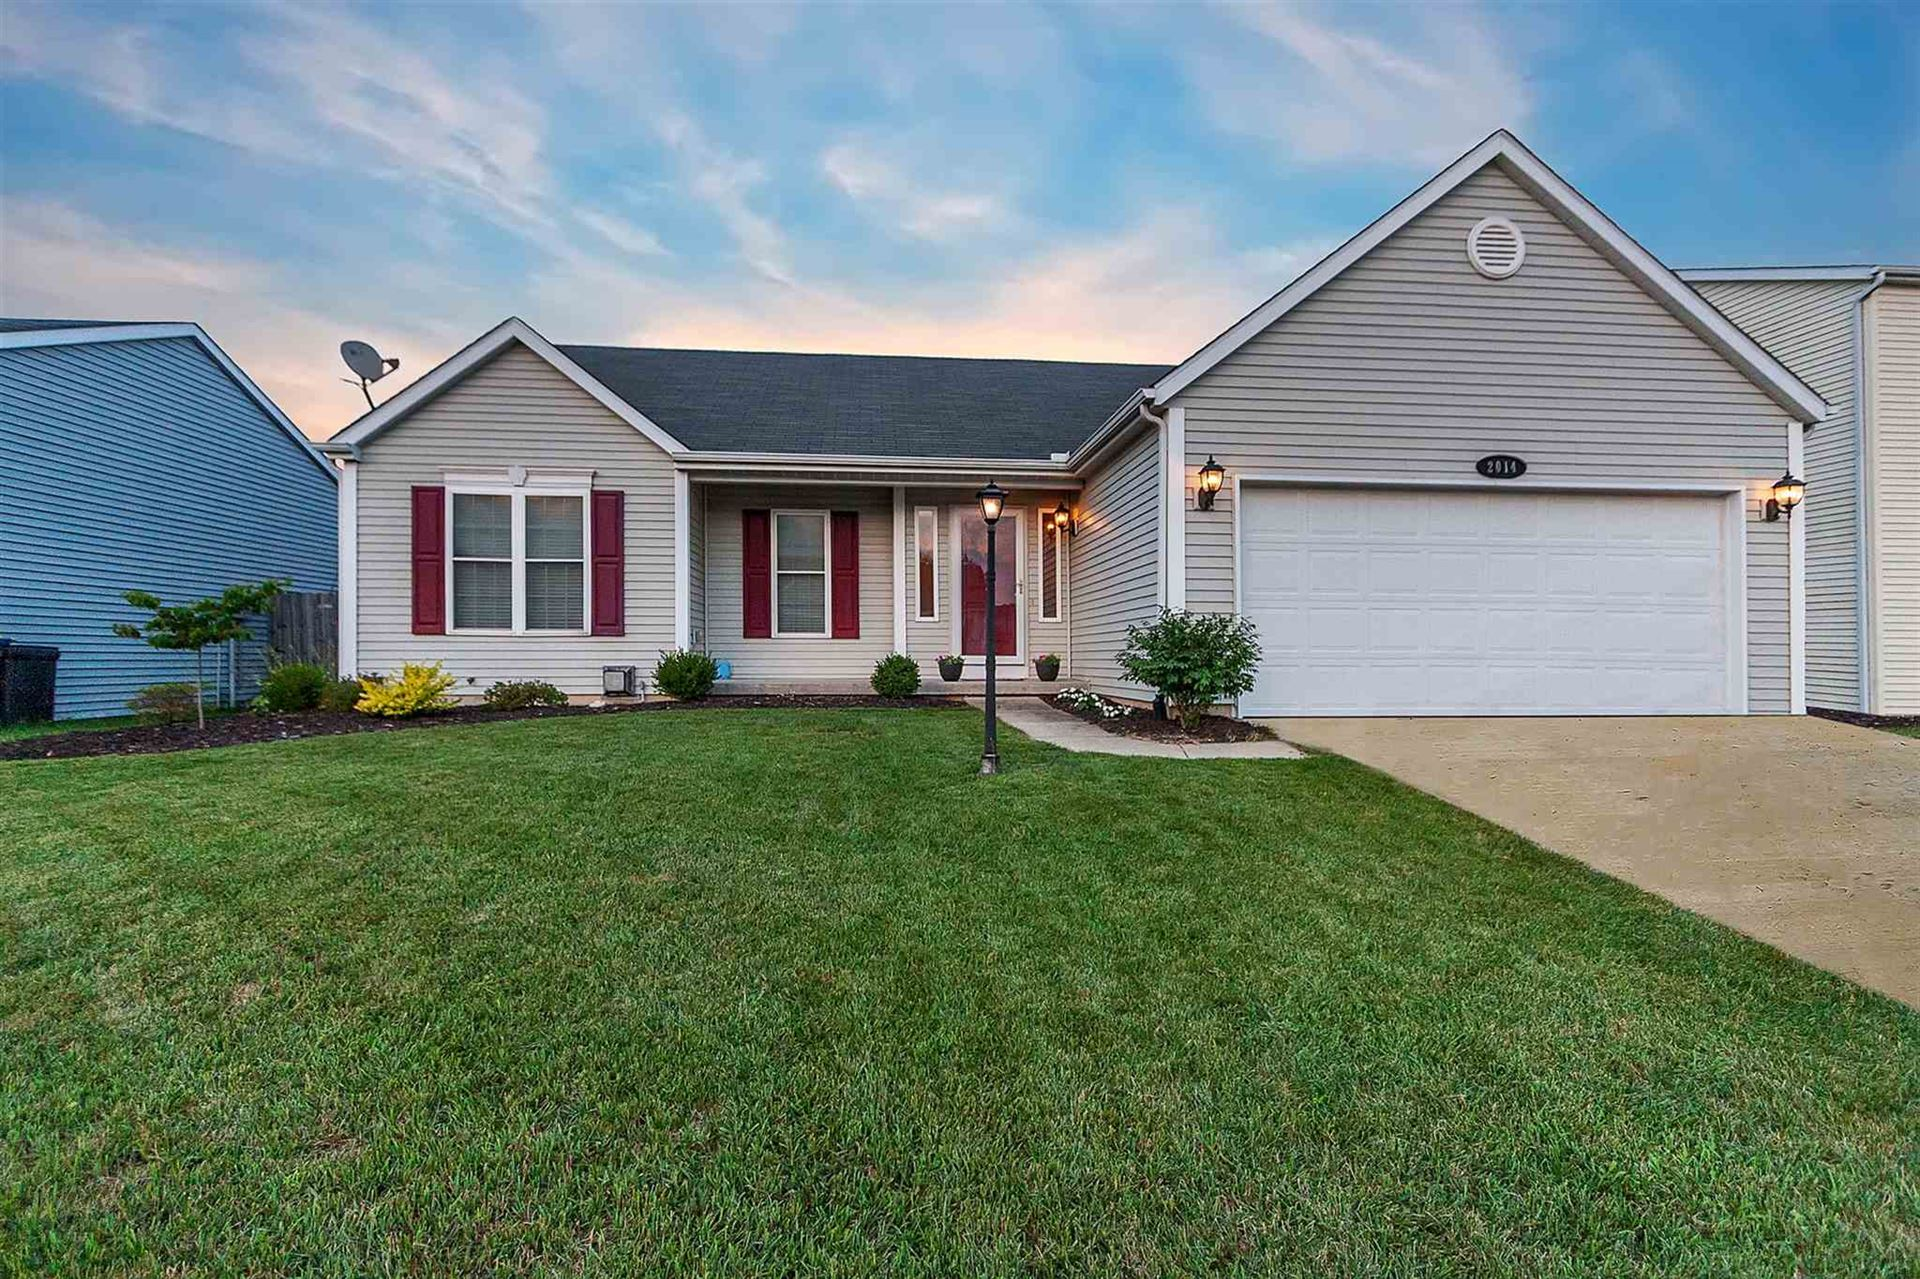 2014 Miniature Rose Lane, Mishawaka, IN 46544 - #: 202026911